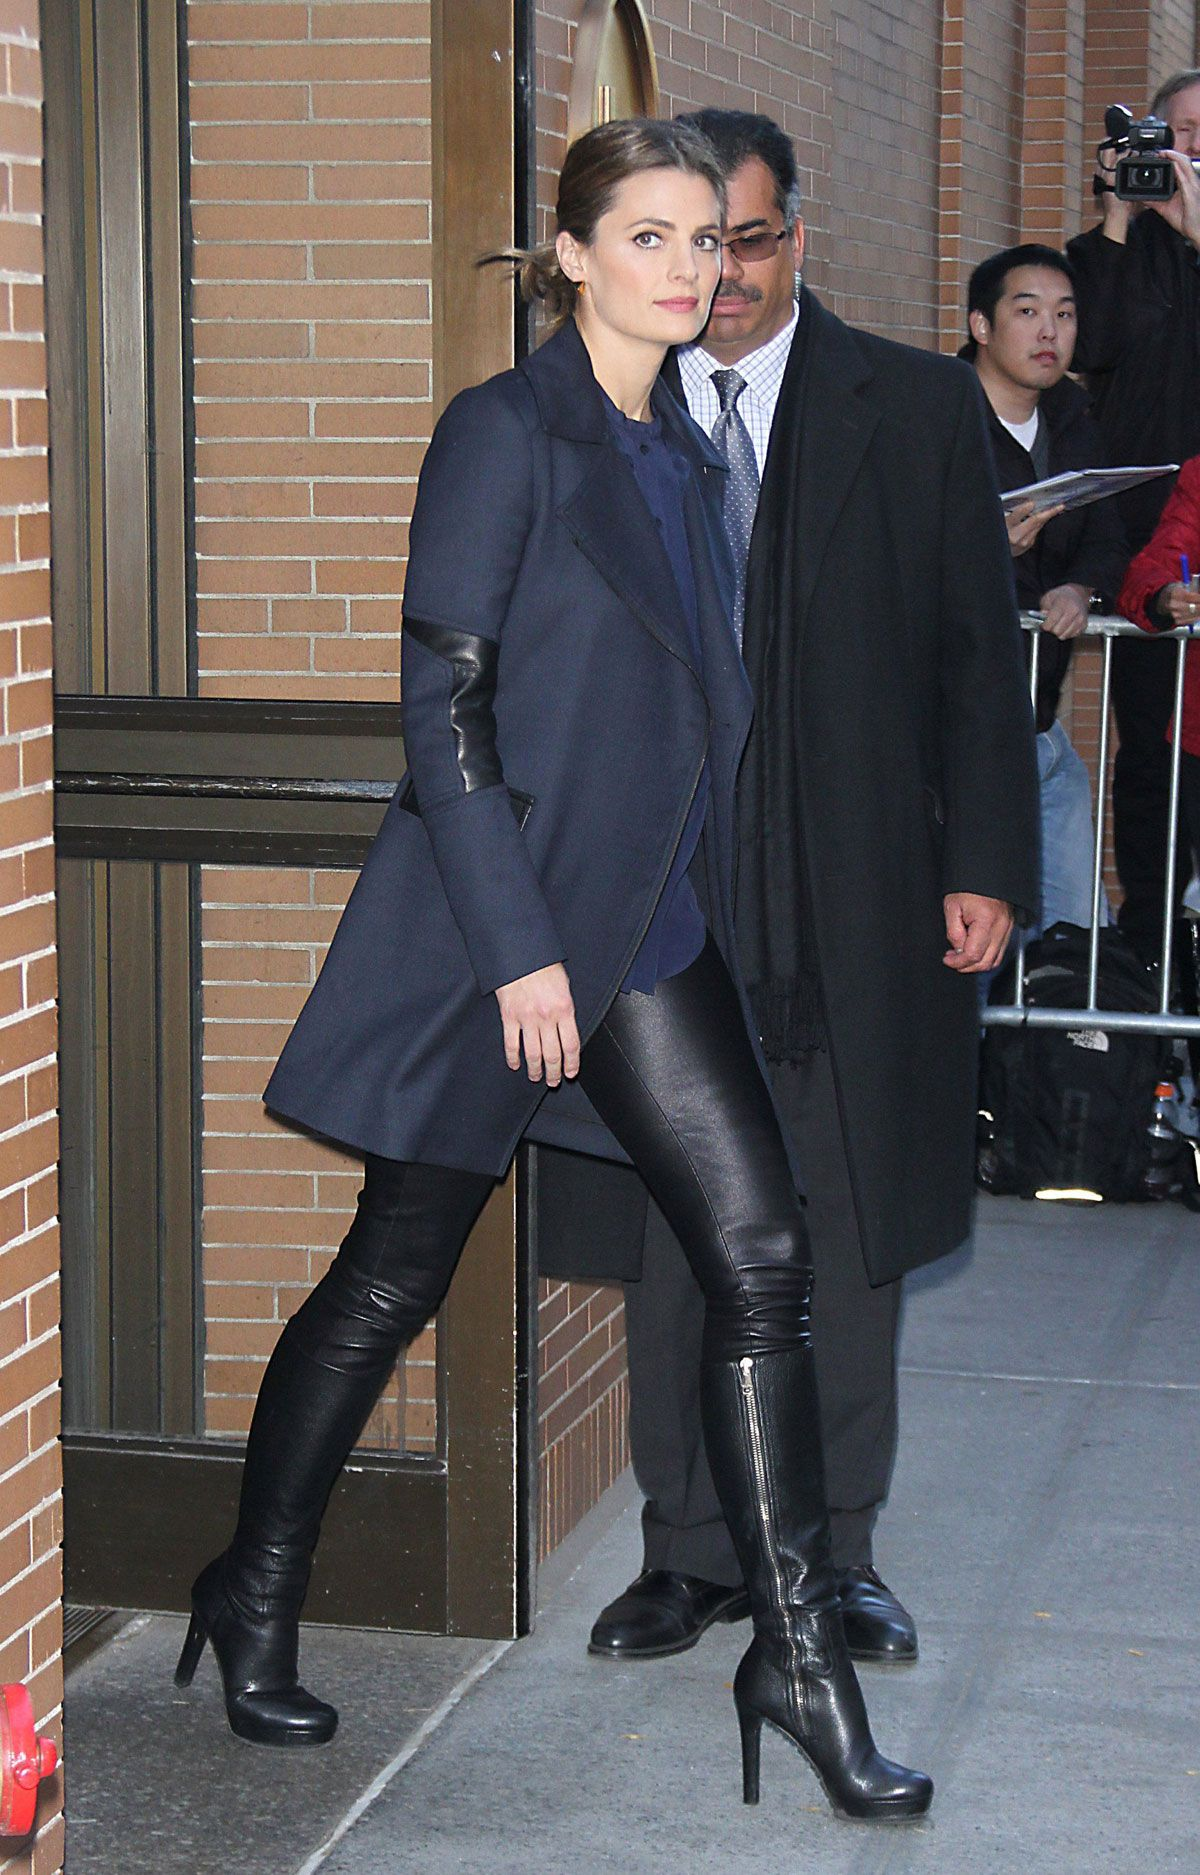 Schwarze Hohe Boots Stana Katic Was Spotted In New York | Lady In Black In